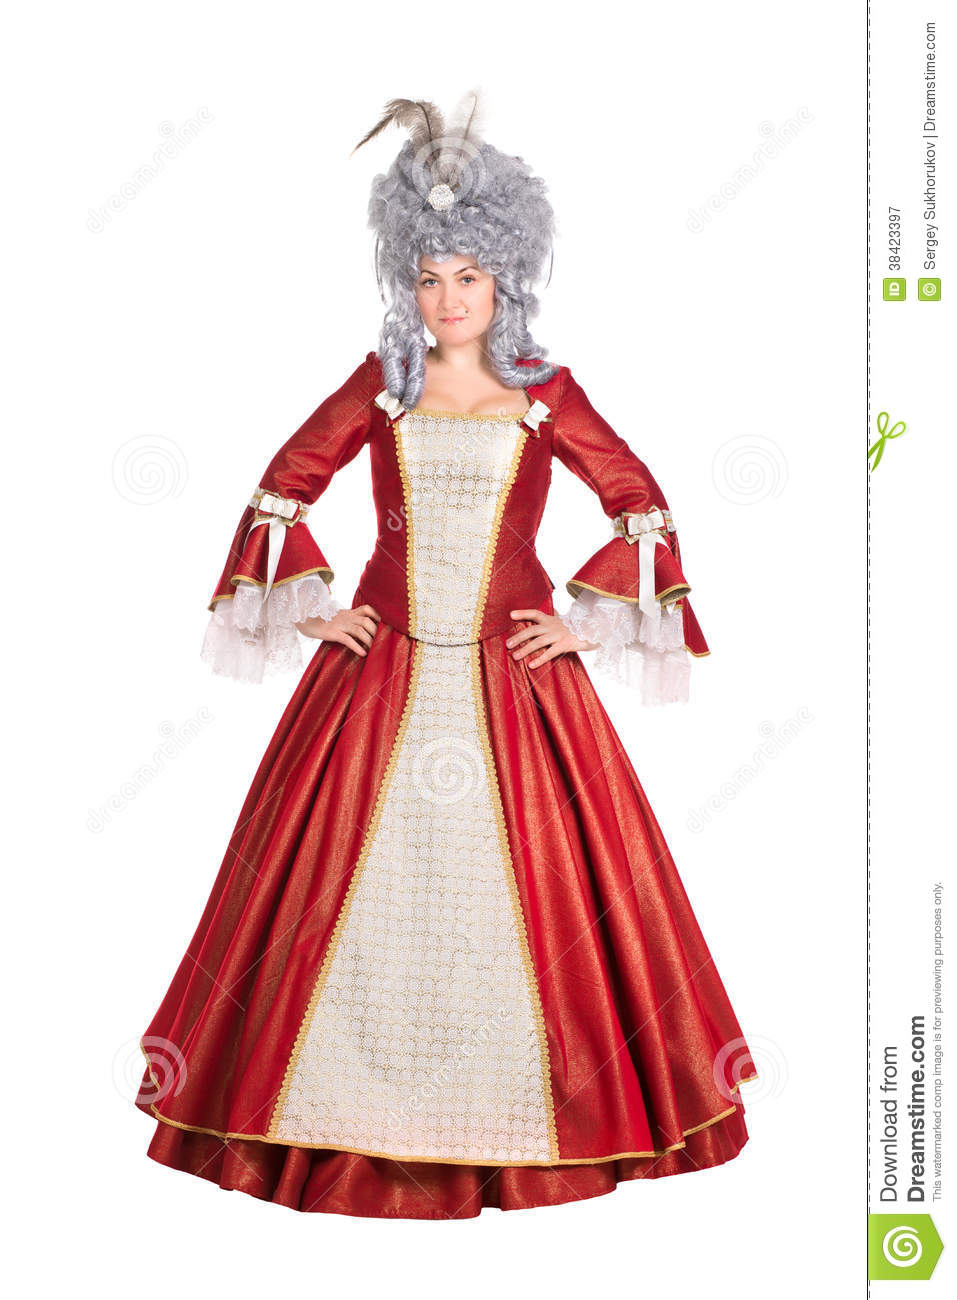 Woman In Red Queen Dress Royalty Free Stock Photography - Image ...